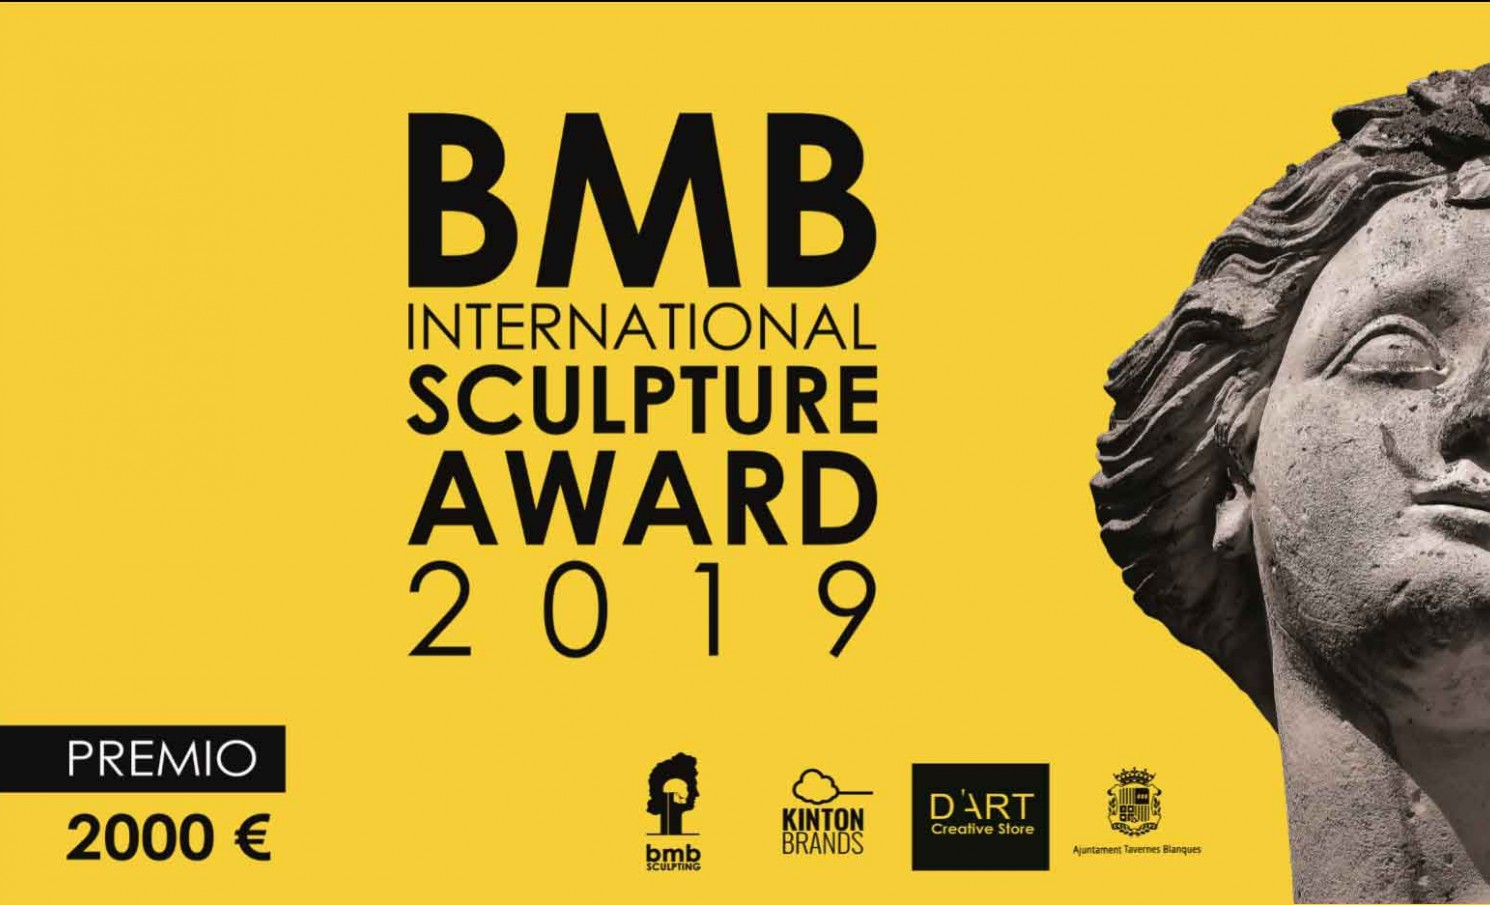 BMB INTERNATIONAL SCULPTURE AWARD 2019